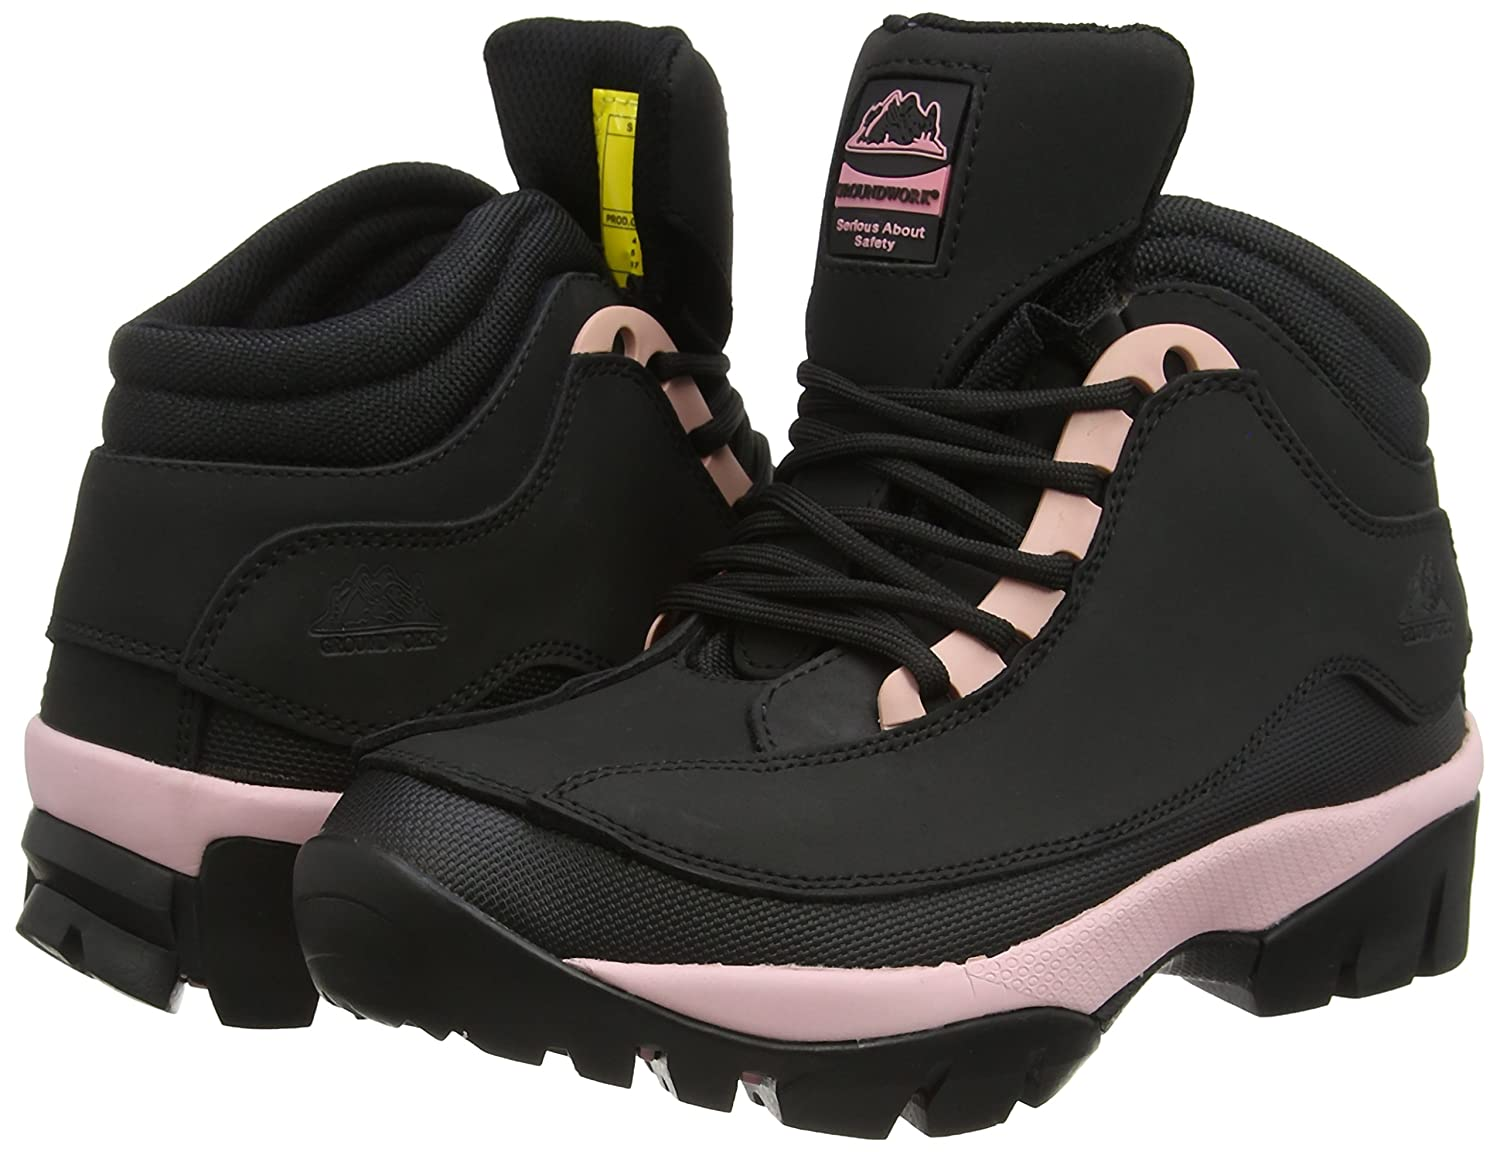 a4e7b43b7f7 Safety & Security Groundwork Womens Gr386 Safety Boots Women's ...